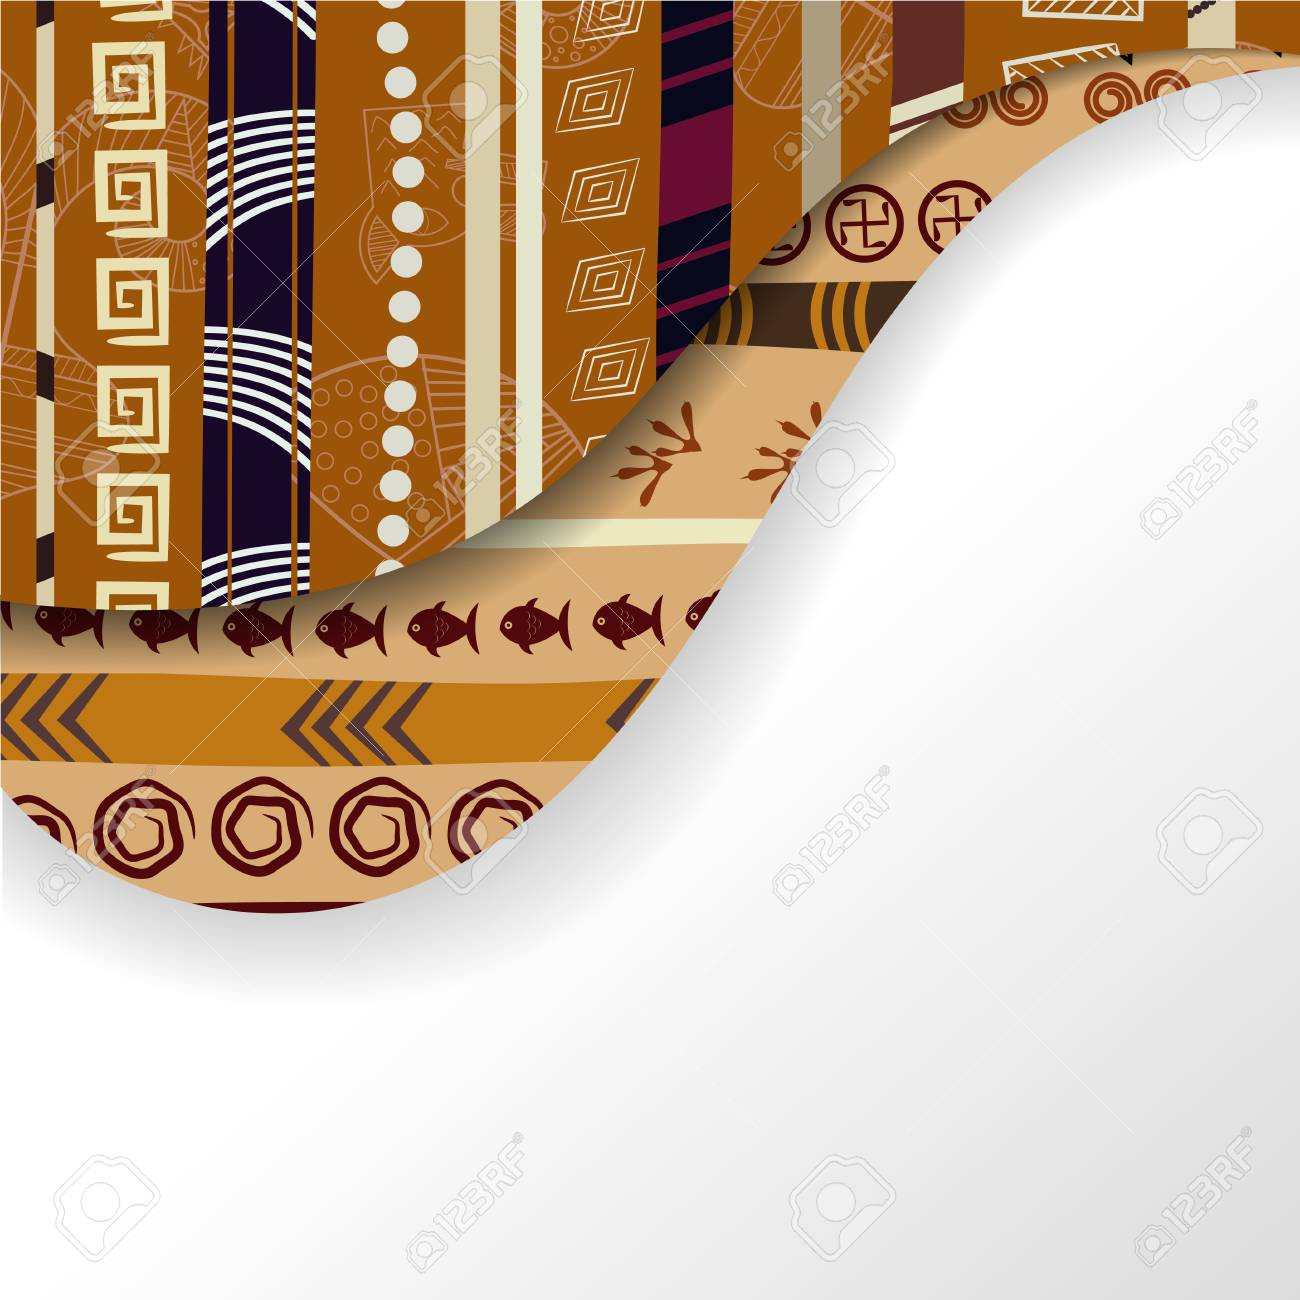 Abstract background with African elements Stock Vector - 18218211